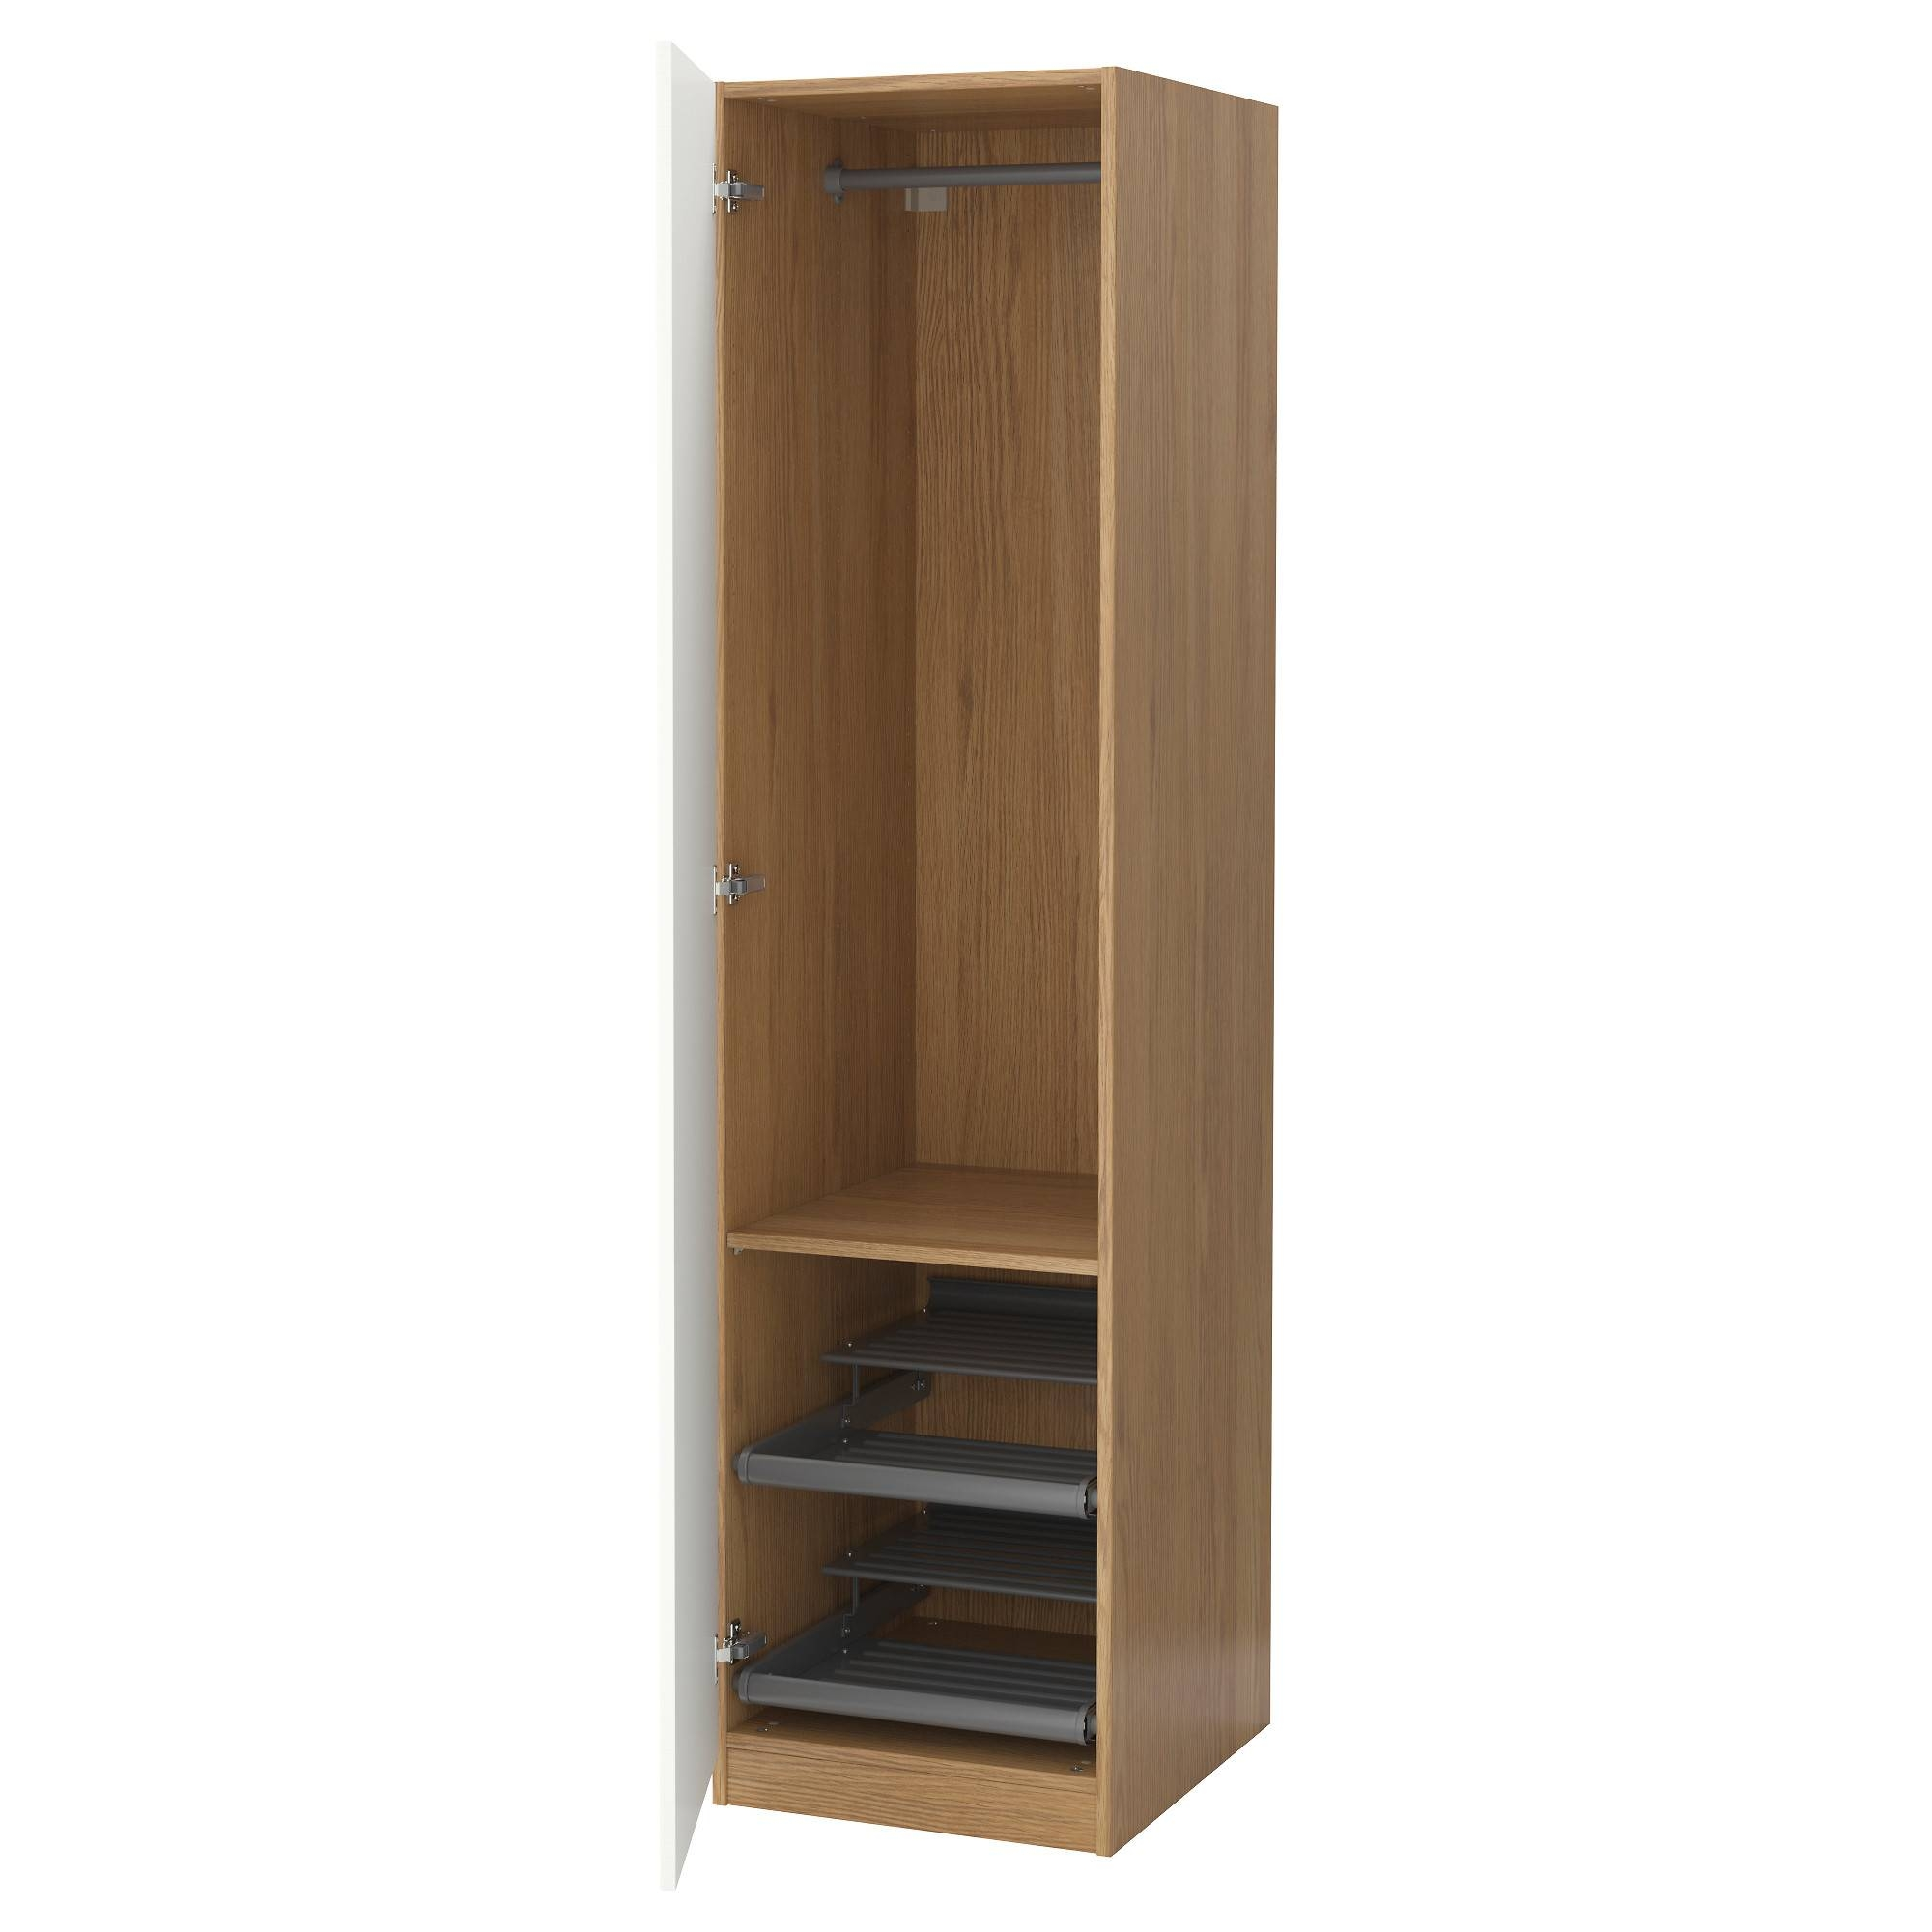 Pax Wardrobe Oak Effect/vinterbro White 50X60X201 Cm - Ikea for Wardrobe Drawers and Shelves Ikea (Image 23 of 30)